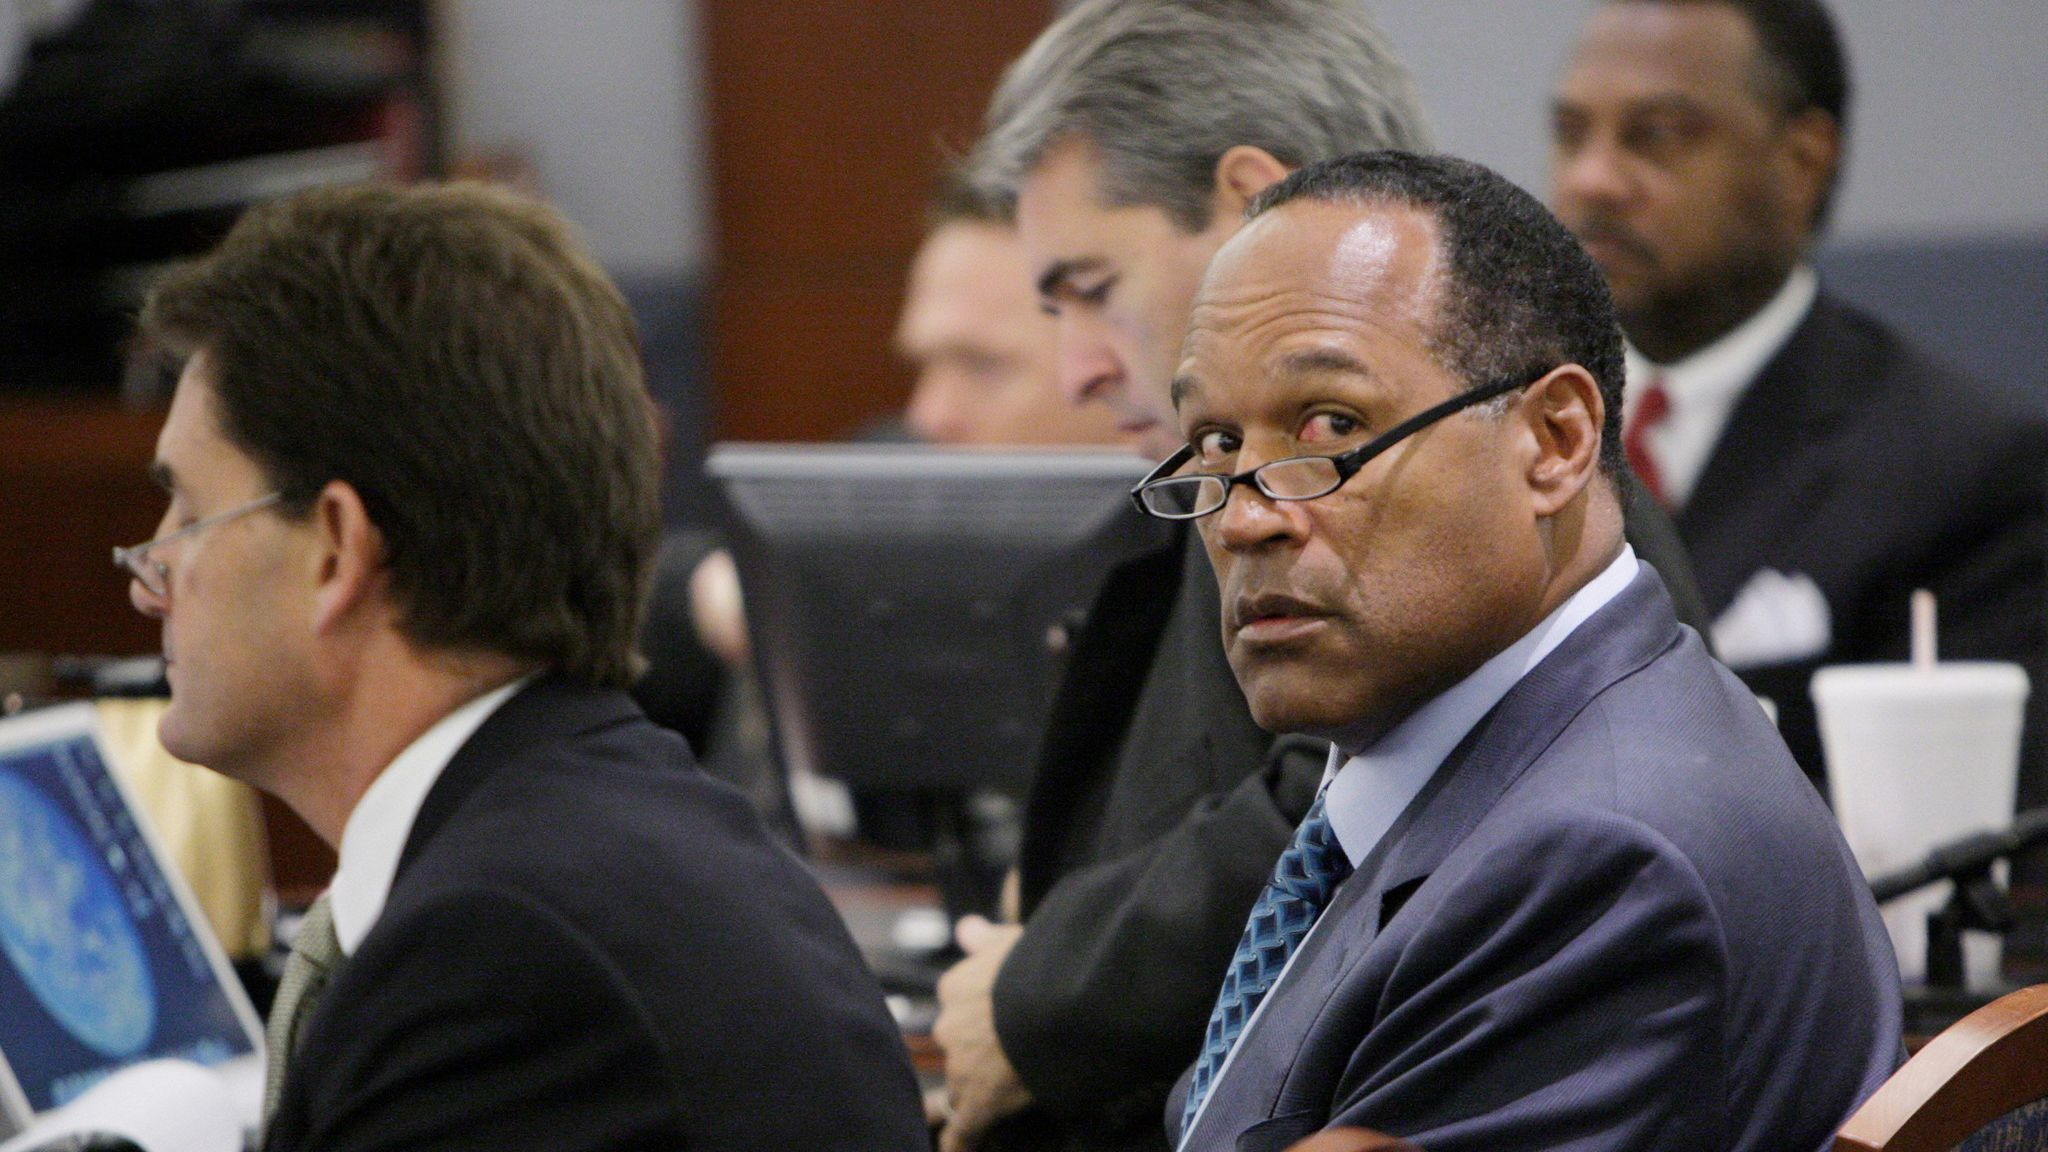 Simpson sits with attorneys Yale Galanter and Gabe Grasso at the start of closing arguments during his robbery trial in Las Vegas,